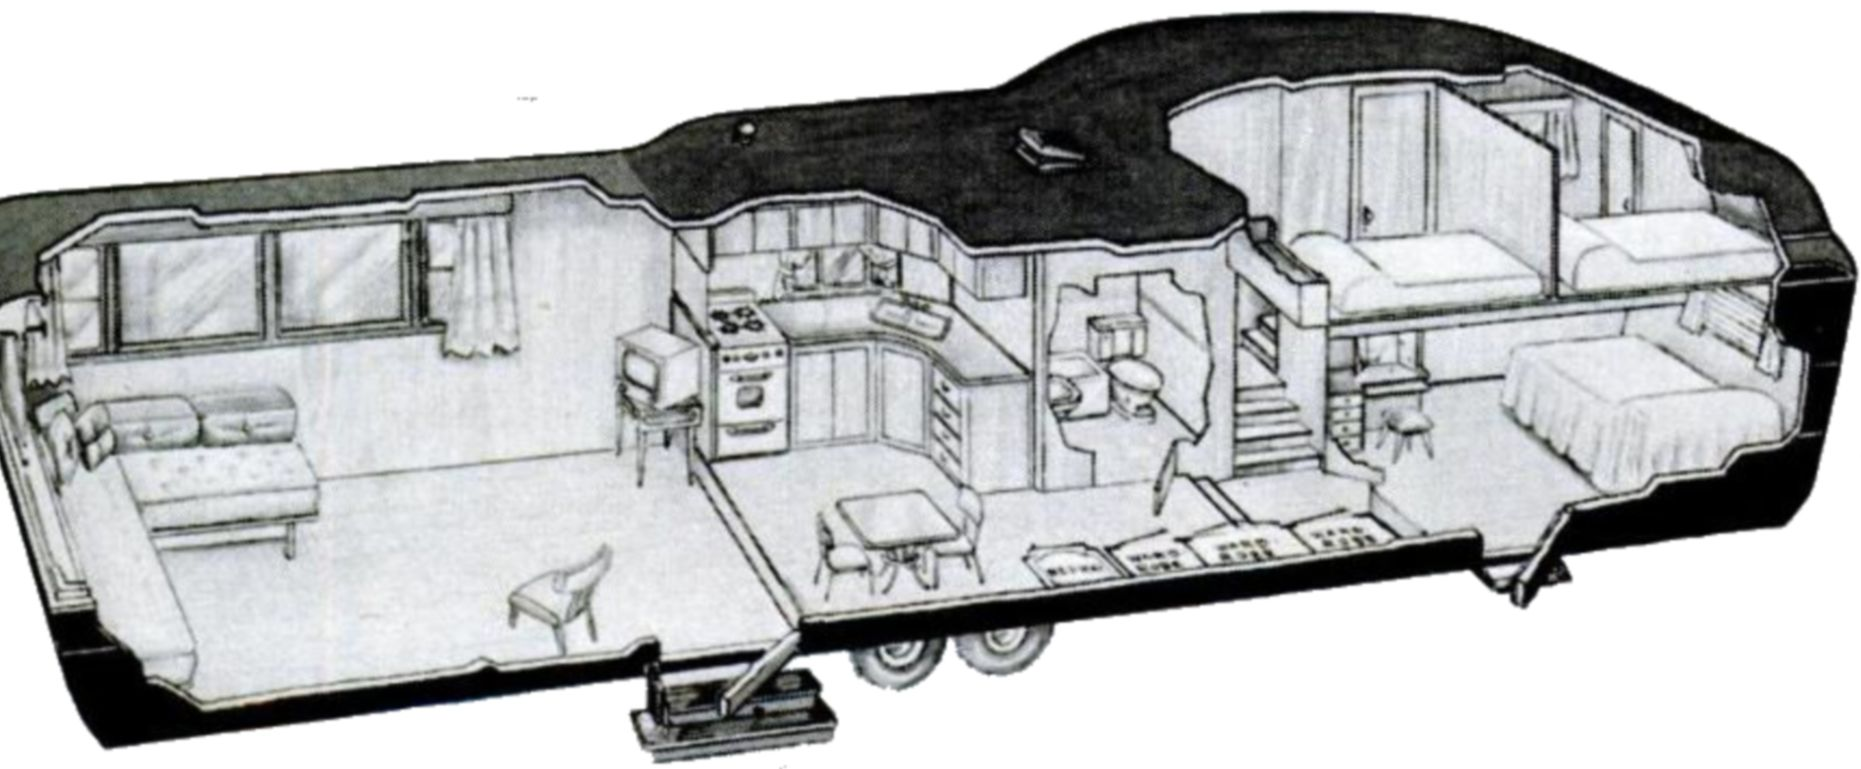 Two Story Travel Trailer 1952 Large Image